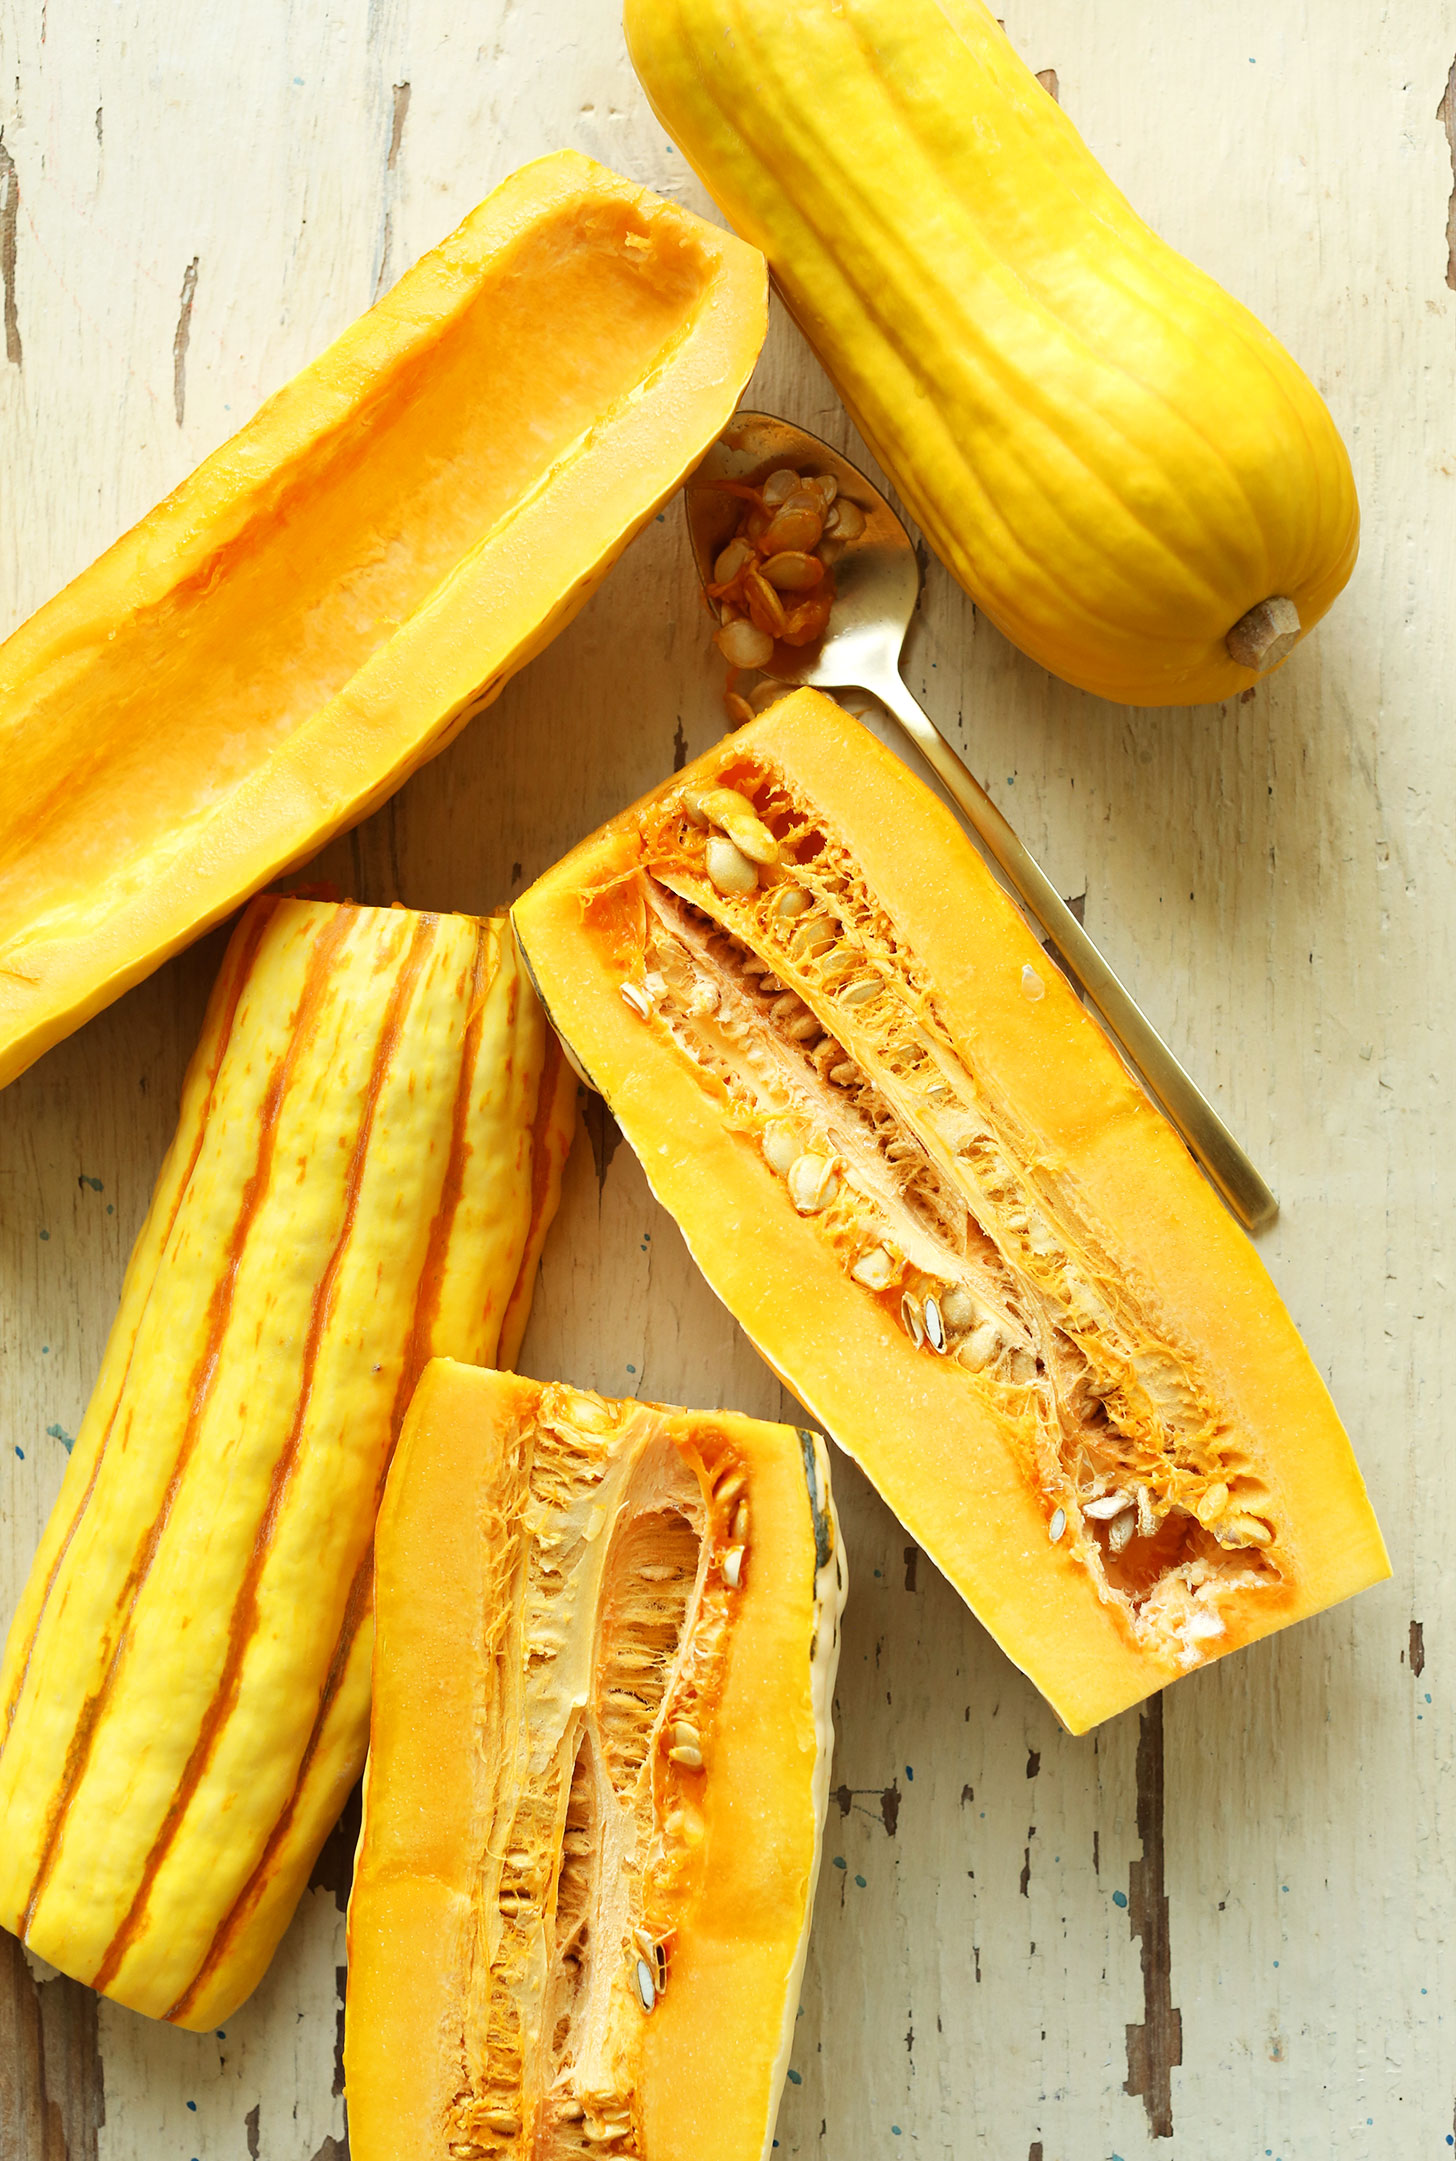 Delicata squash for making a delicious vegan Thanksgiving recipe